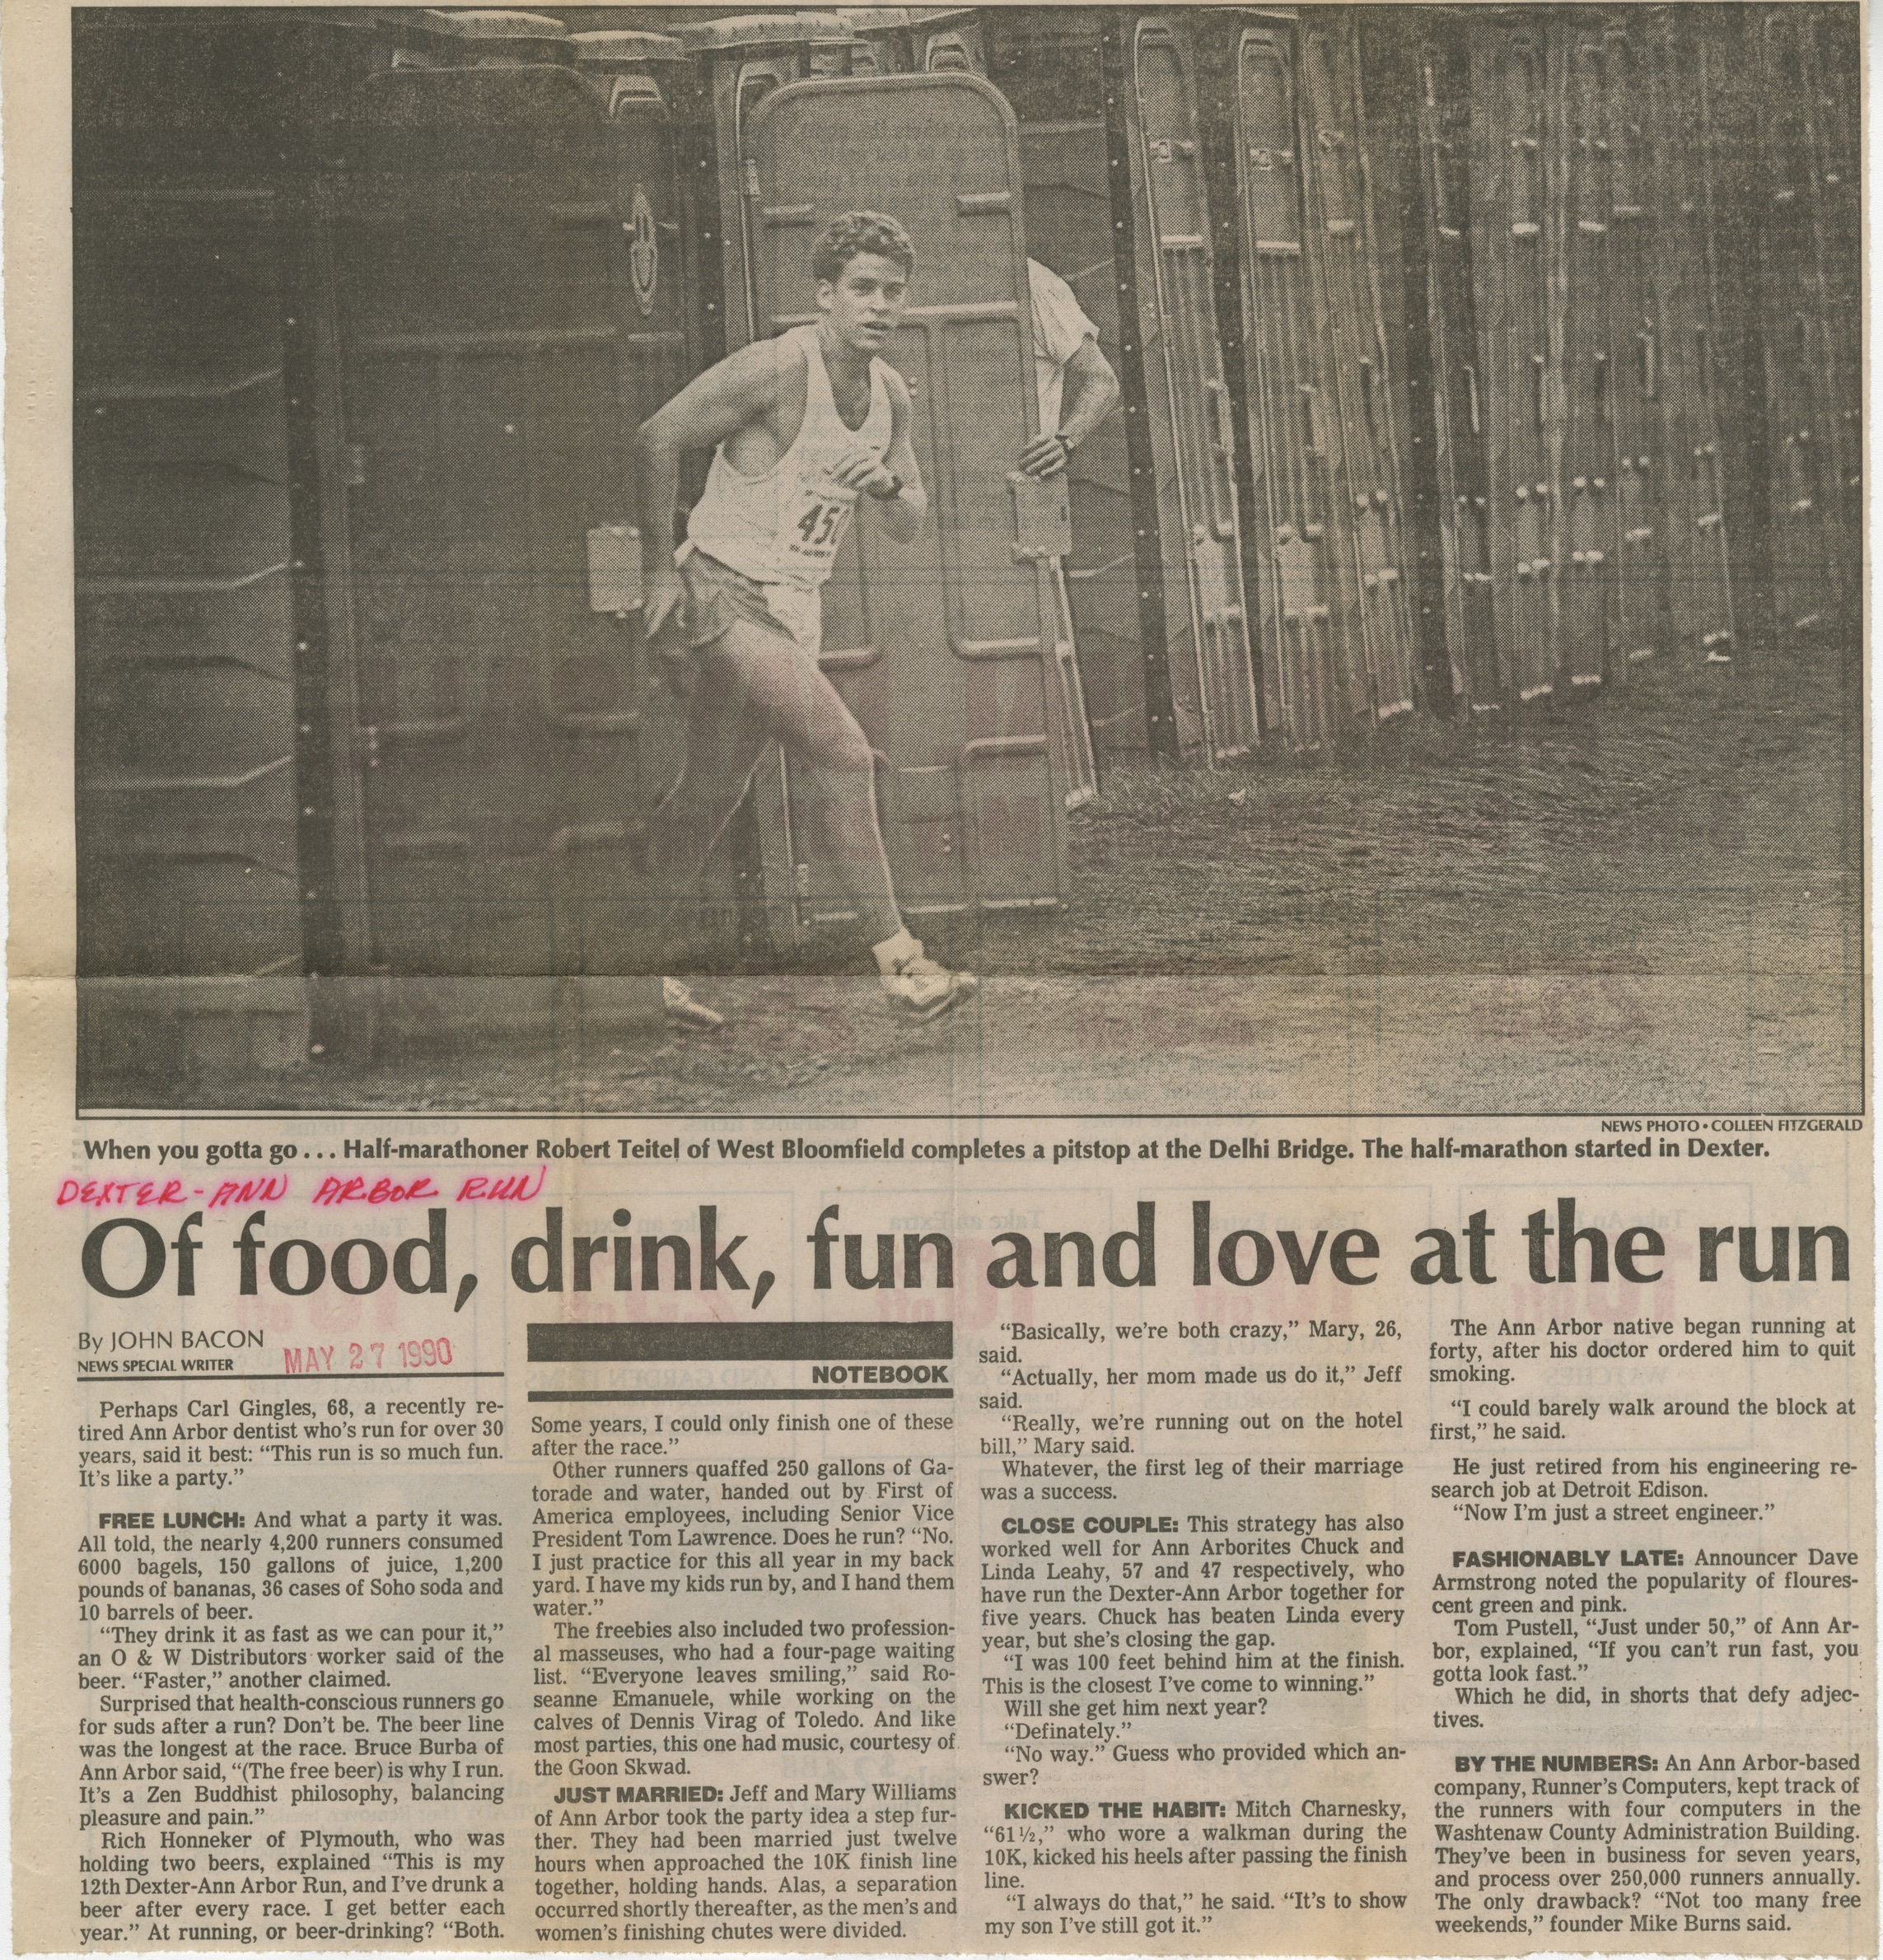 Of food, drink, fun and love at the run image